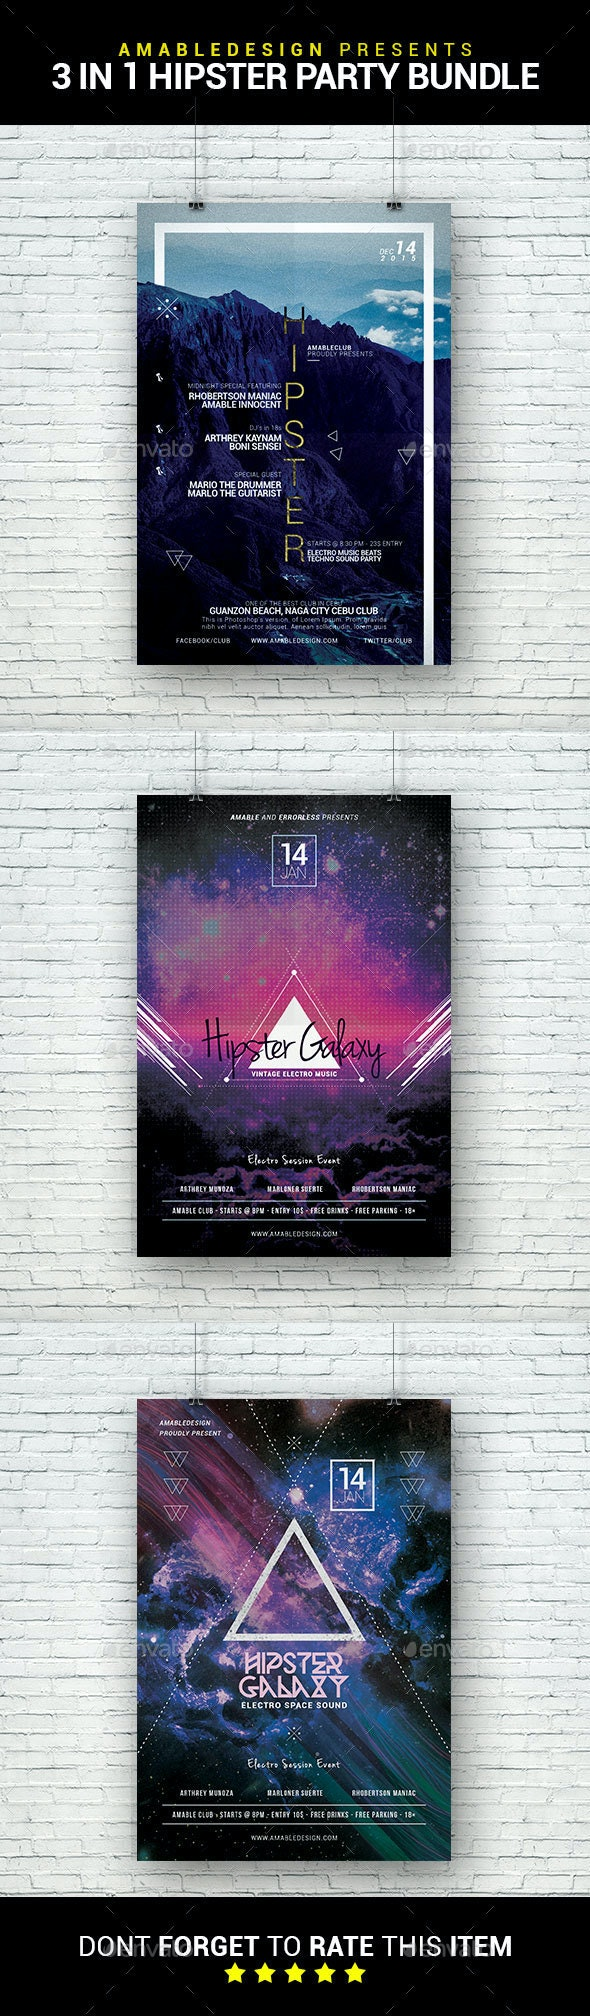 3 in 1 Hipster Party Flyer/Poster Bundle - Clubs & Parties Events